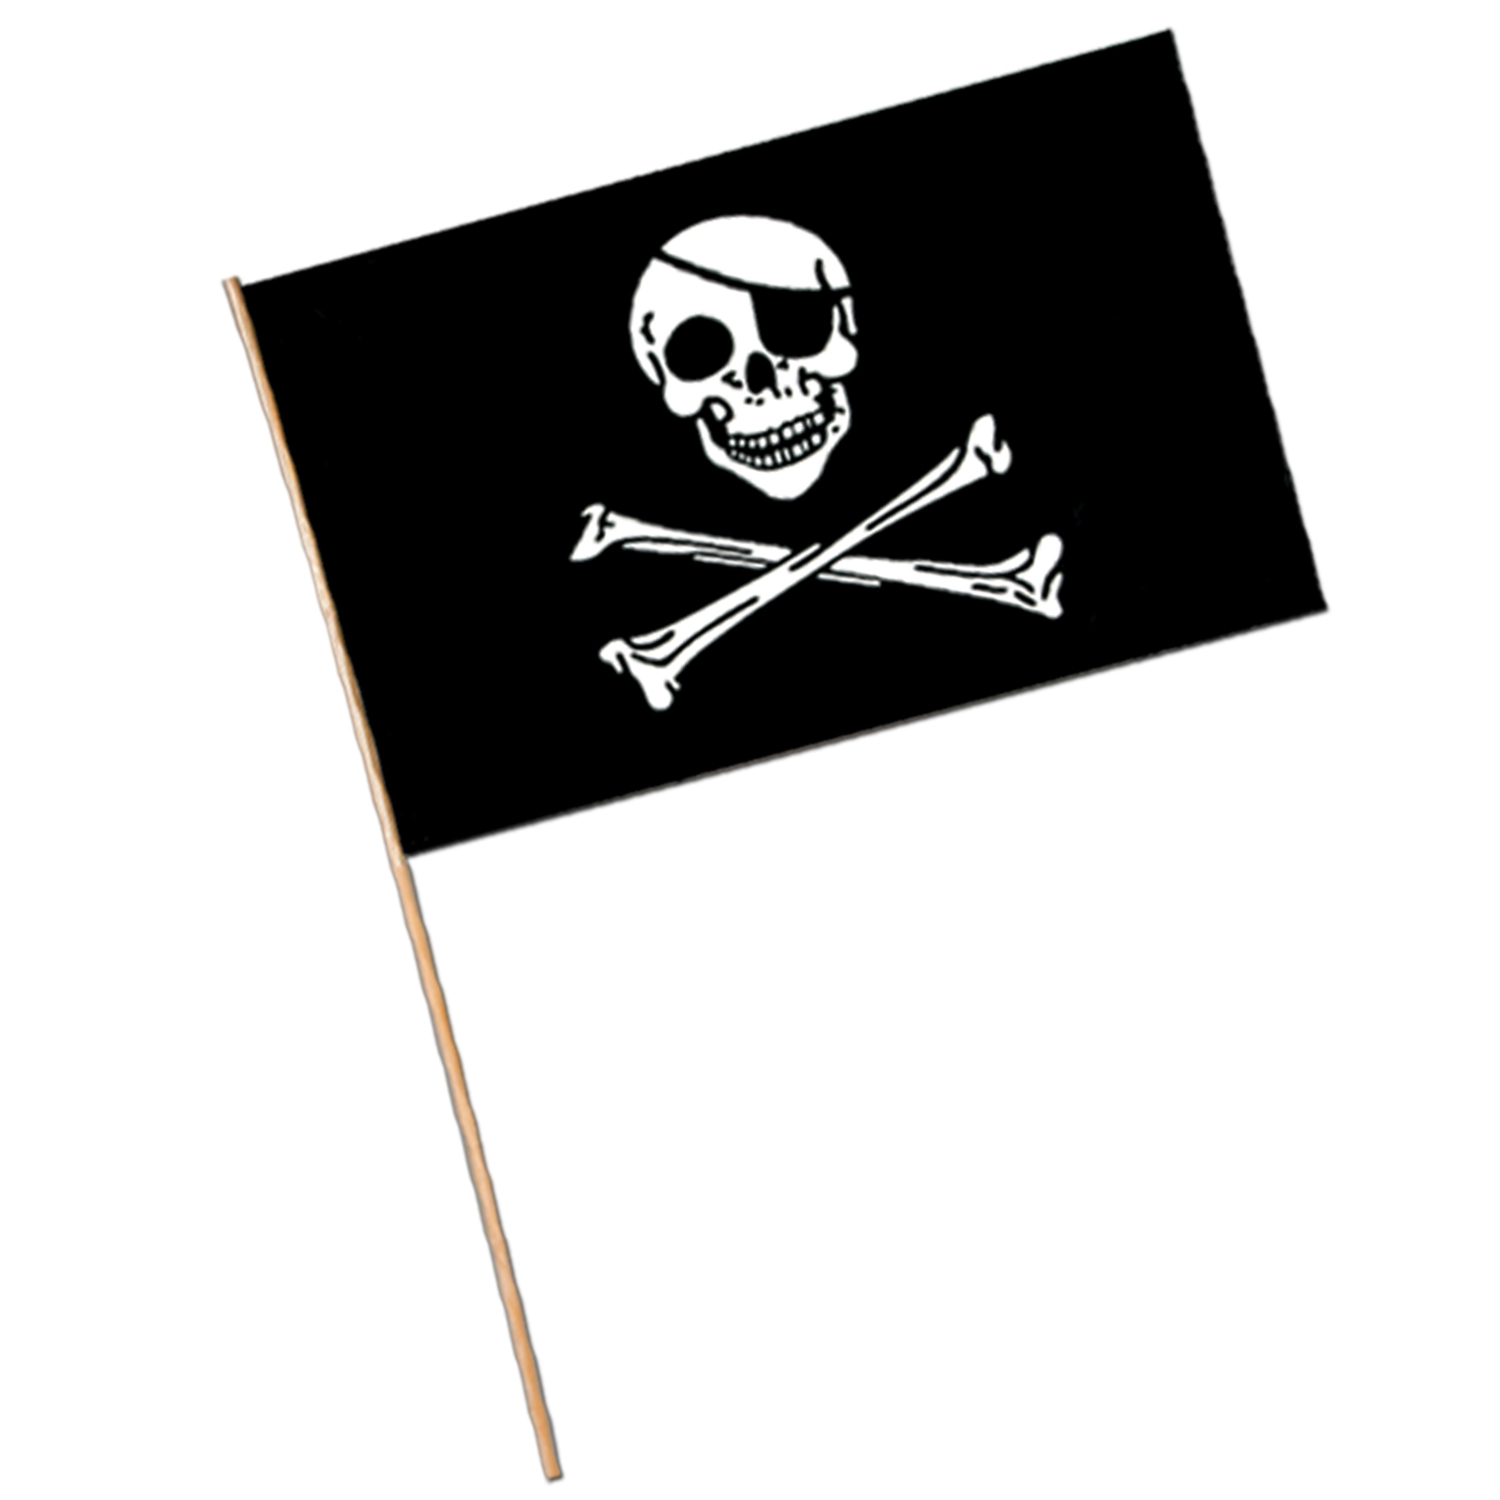 Pirate Flag - Plastic (Pack of 144) Skull and Bones, Pirate, flag, pirate skull, eyepatch, pirate flag